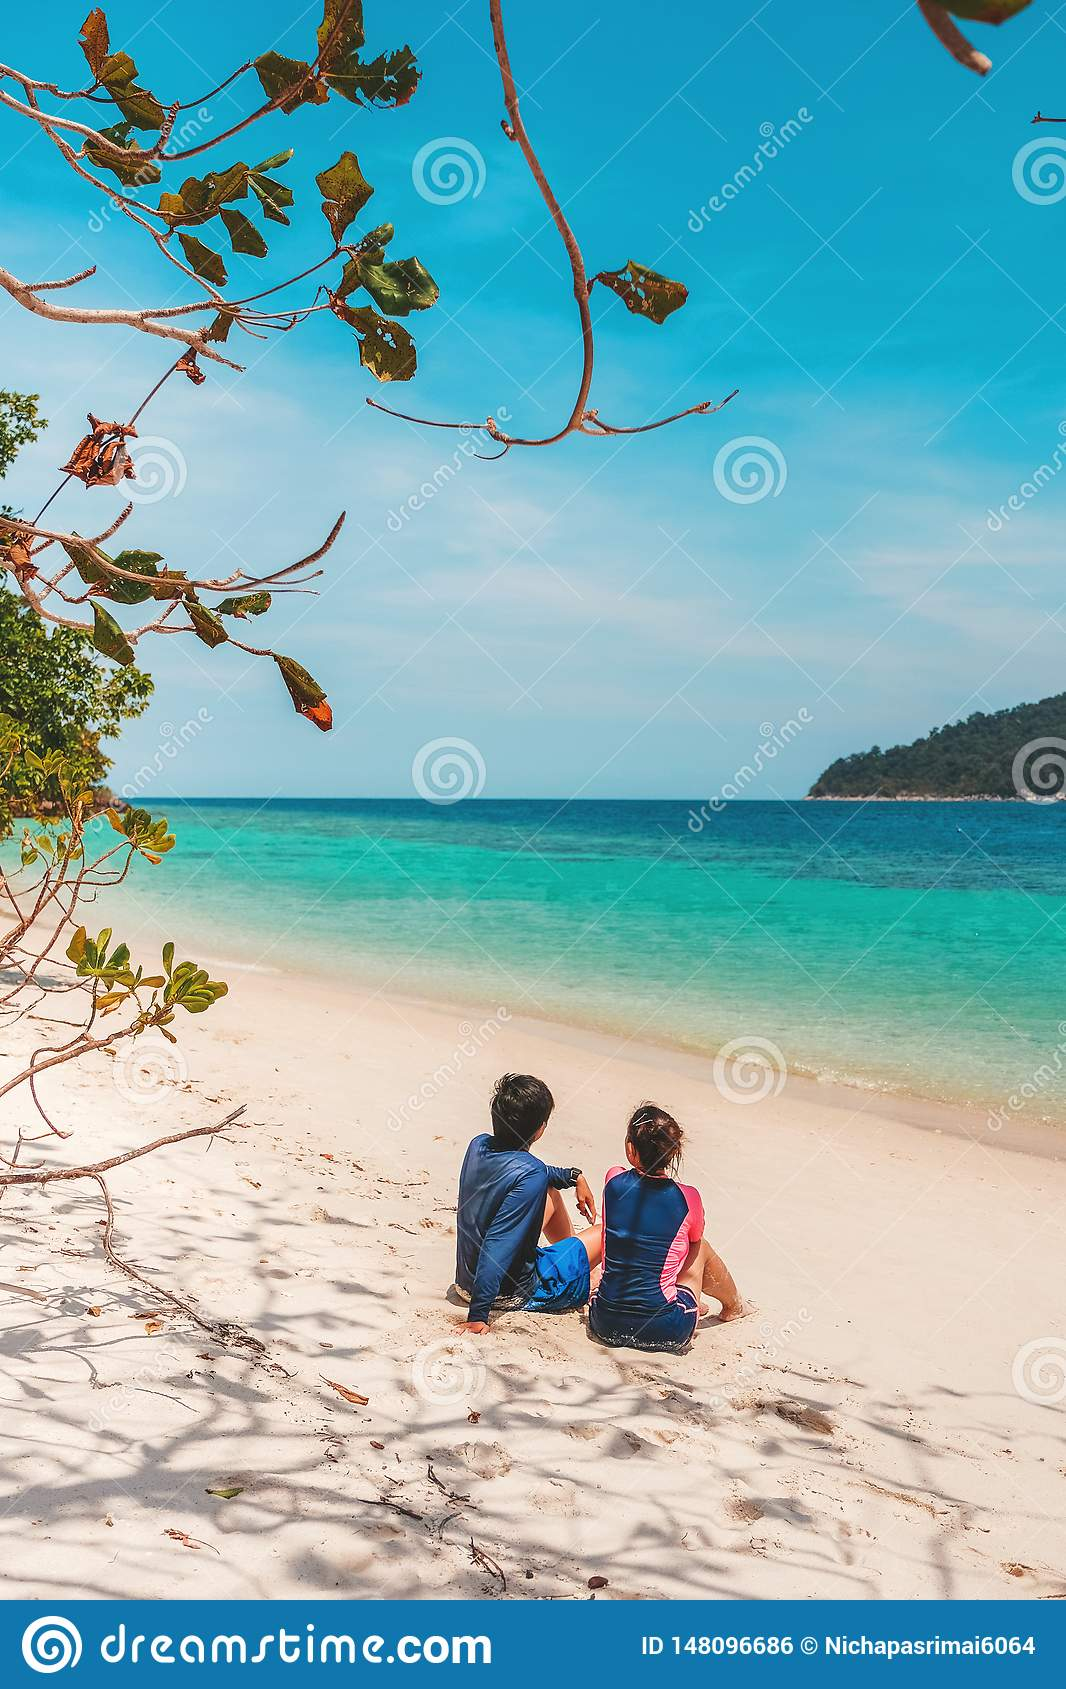 Couple relaxing on beach summer holiday